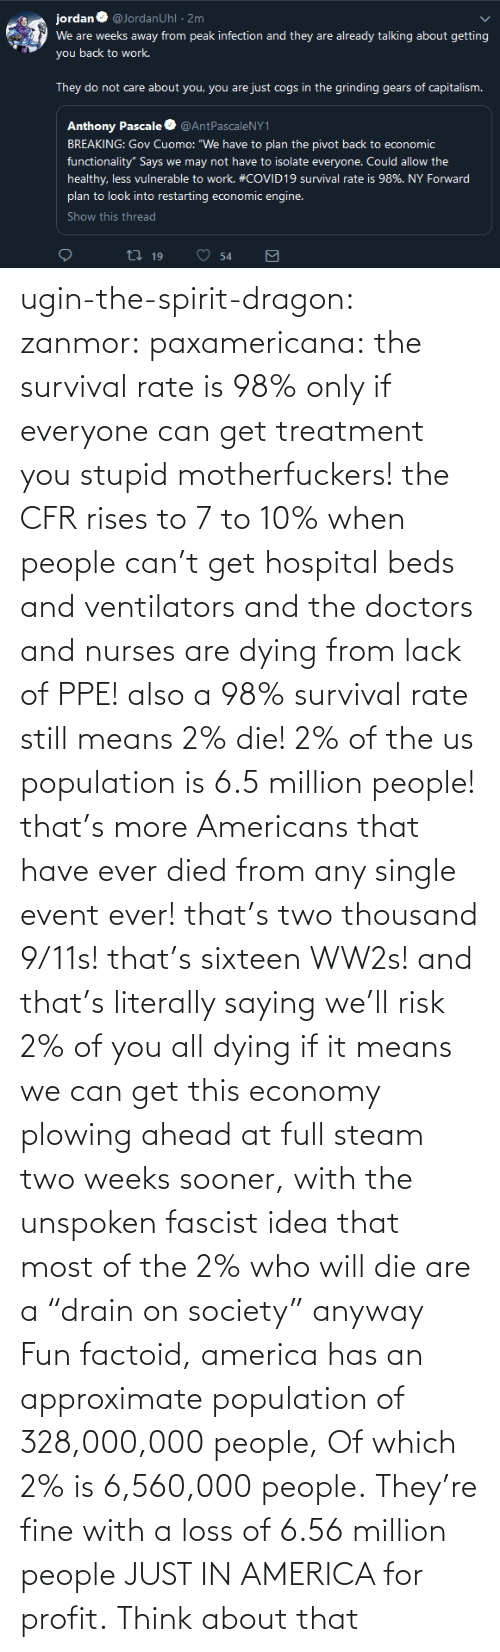 "Spirit: ugin-the-spirit-dragon: zanmor:   paxamericana:  the survival rate is 98% only if everyone can get treatment you stupid motherfuckers! the CFR rises to 7 to 10% when people can't get hospital beds and ventilators and the doctors and nurses are dying from lack of PPE!  also a 98% survival rate still means 2% die! 2% of the us population is 6.5 million people! that's more Americans that have ever died from any single event ever! that's two thousand 9/11s! that's sixteen WW2s!  and that's literally saying we'll risk 2% of you all dying if it means we can get this economy plowing ahead at full steam two weeks sooner, with the unspoken fascist idea that most of the 2% who will die are a ""drain on society"" anyway    Fun factoid, america has an approximate population of 328,000,000 people,  Of which 2% is 6,560,000 people. They're fine with a loss of 6.56 million people JUST IN AMERICA for profit. Think about that"